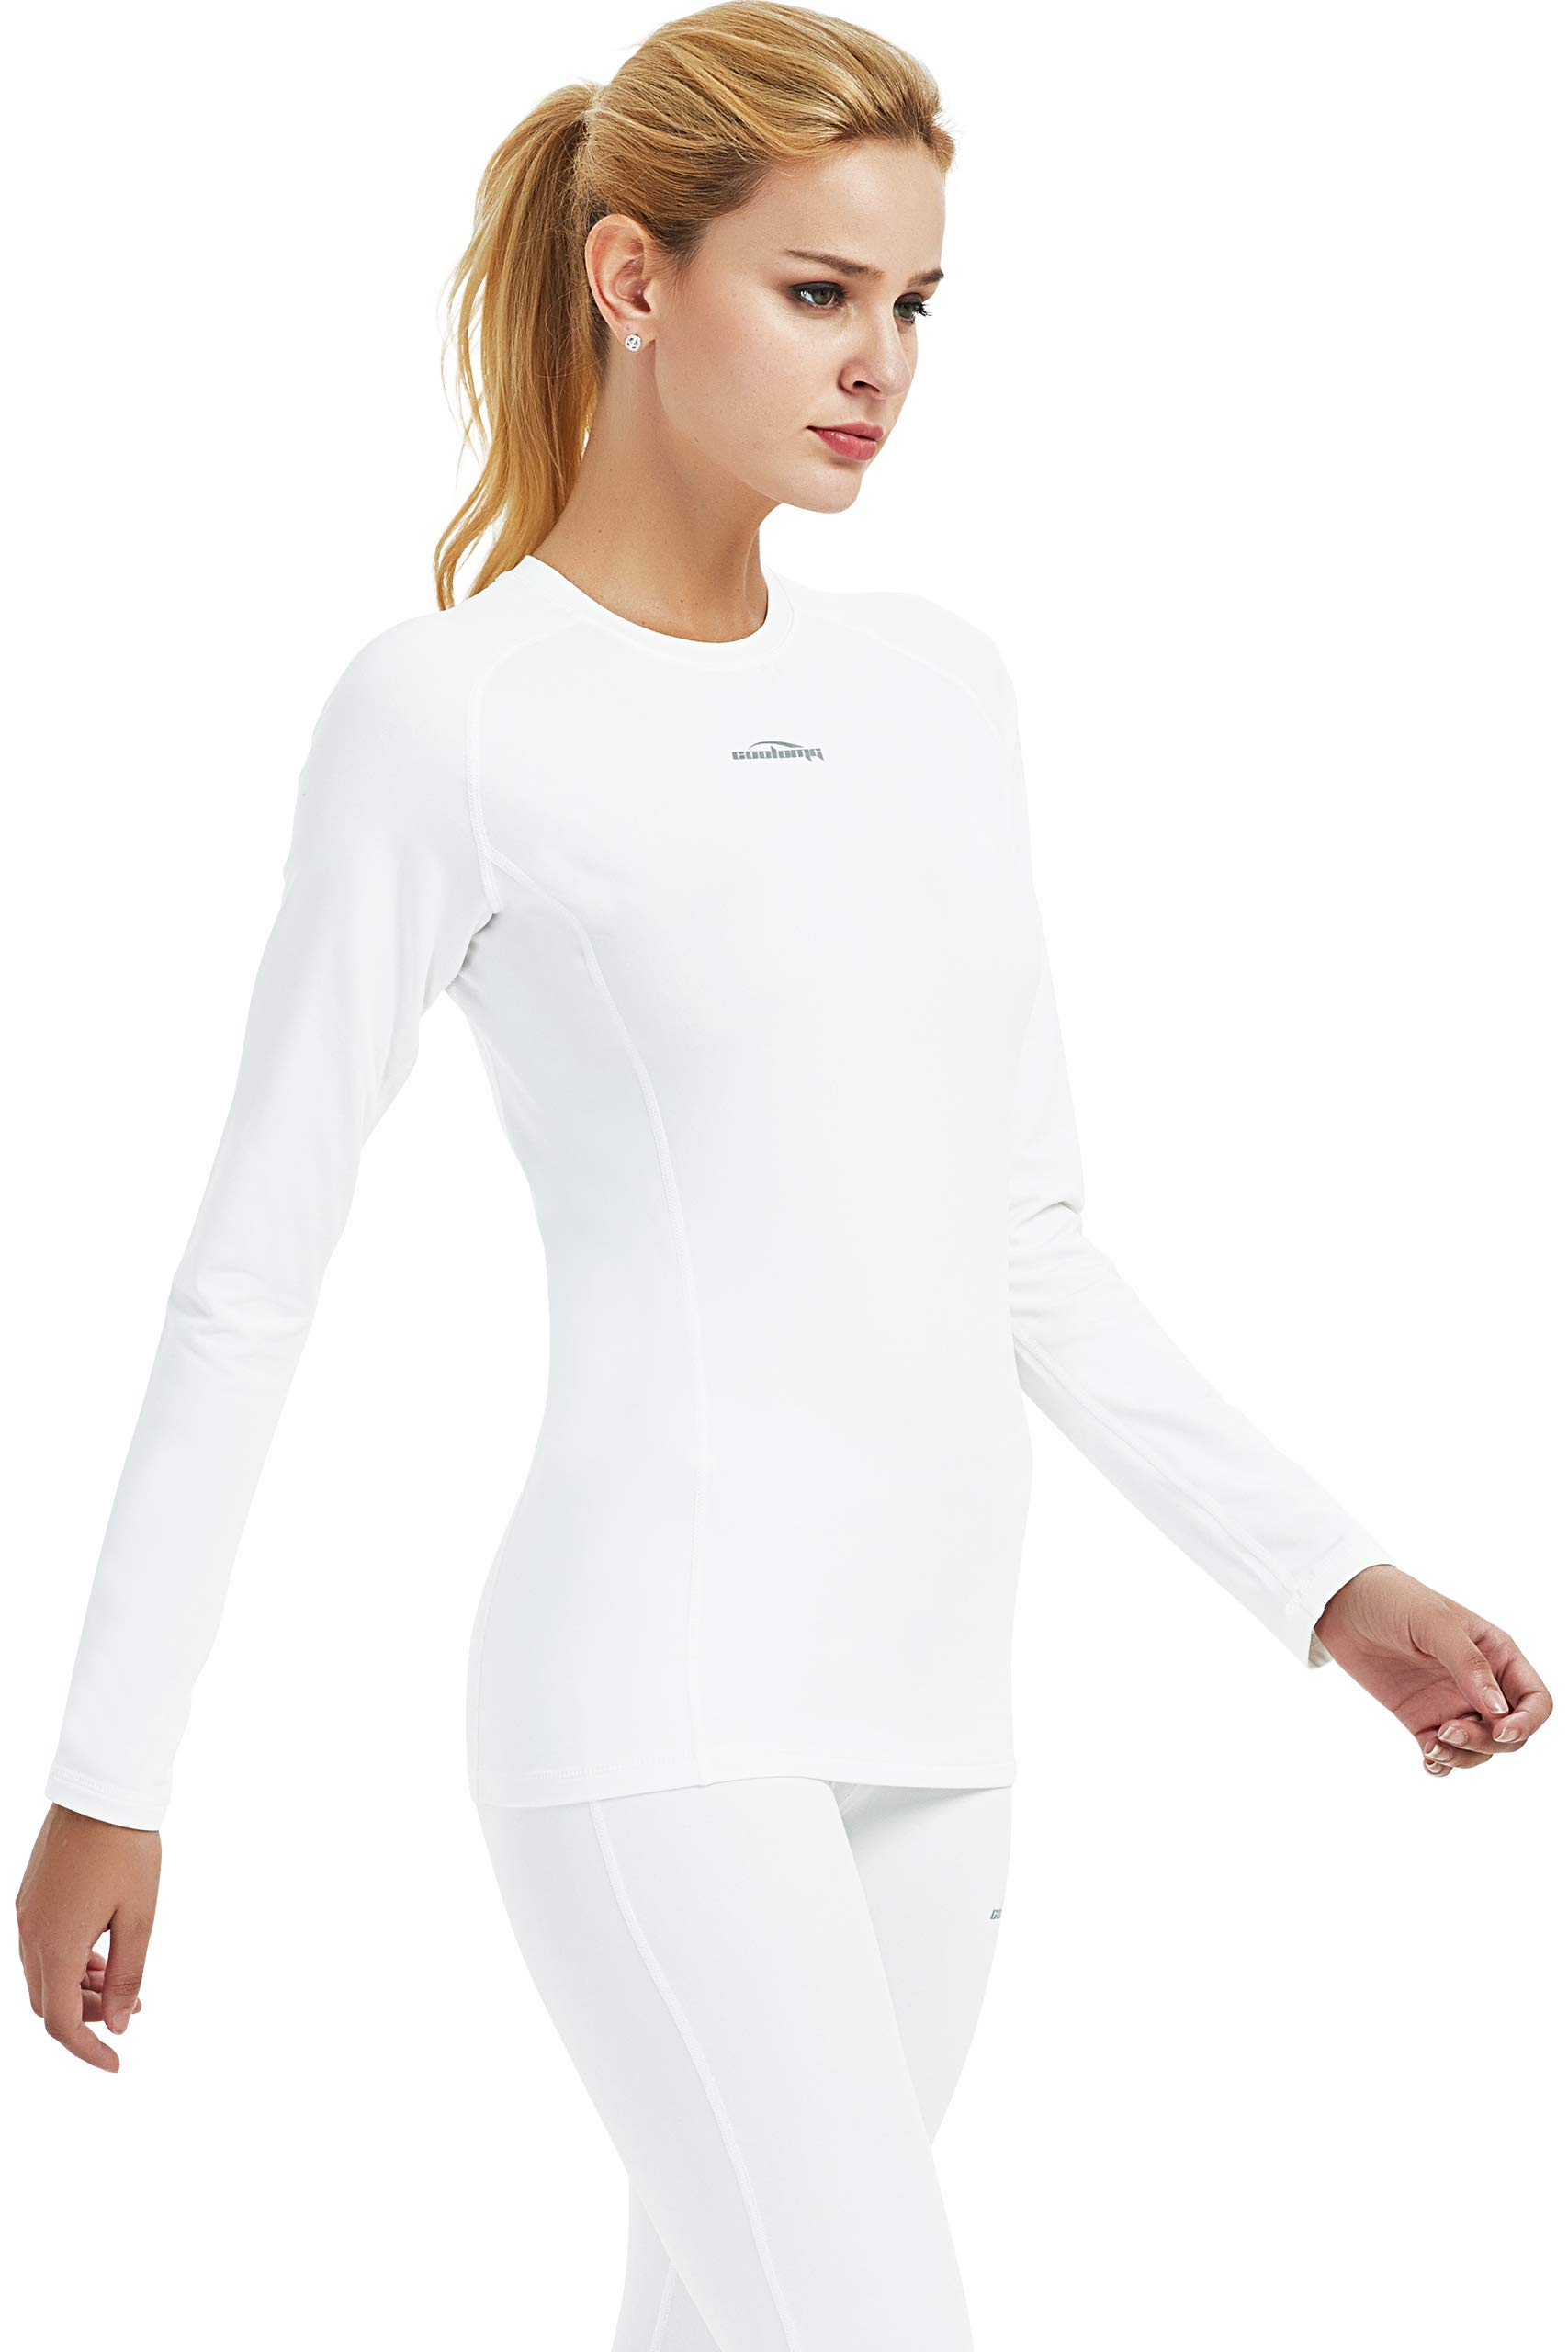 Women's Thermal Compression Shirt Winter Baselayer Long Sleeve Fleece-Lined Workout Yoga Running Skiing Tops